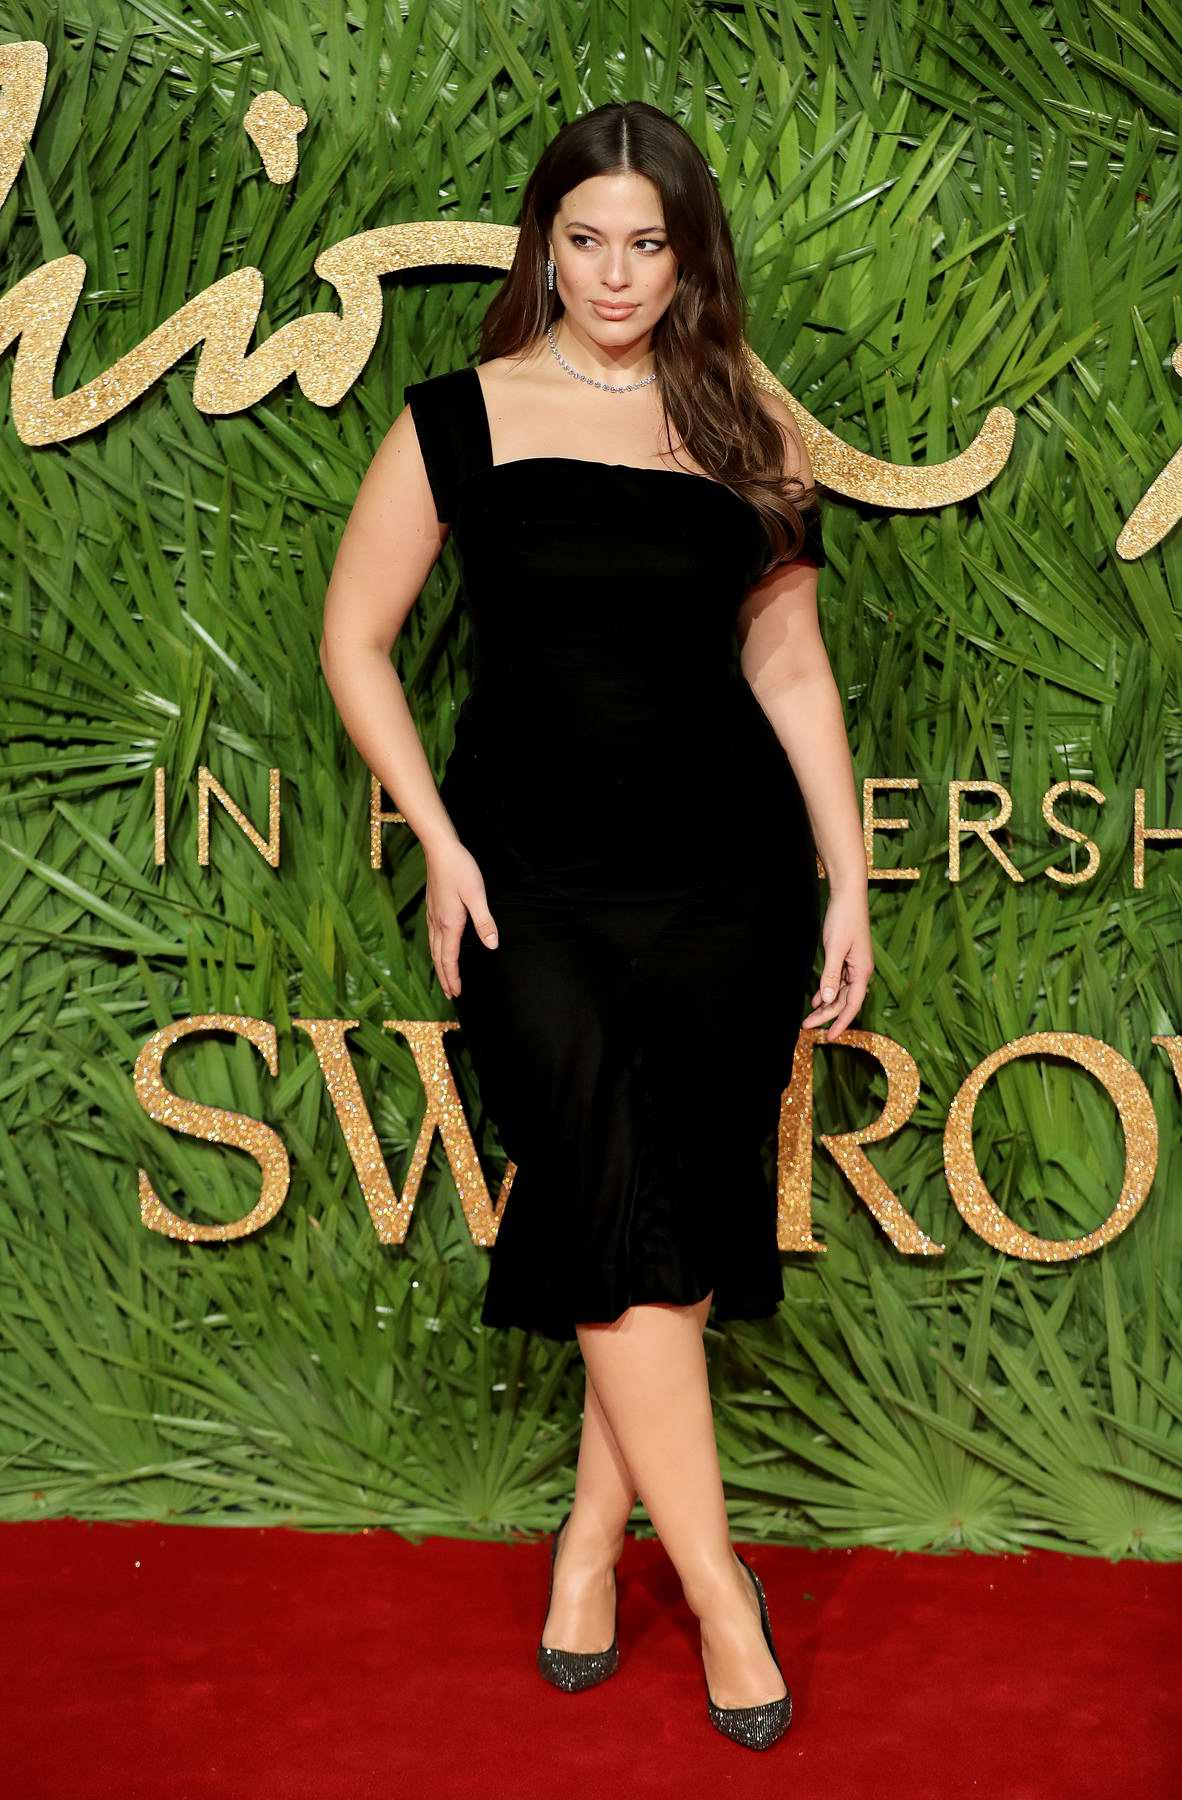 Ashley Graham attends The British Fashion Awards 2017 in partnership with Swarovski held at the Royal Albert Hall in London